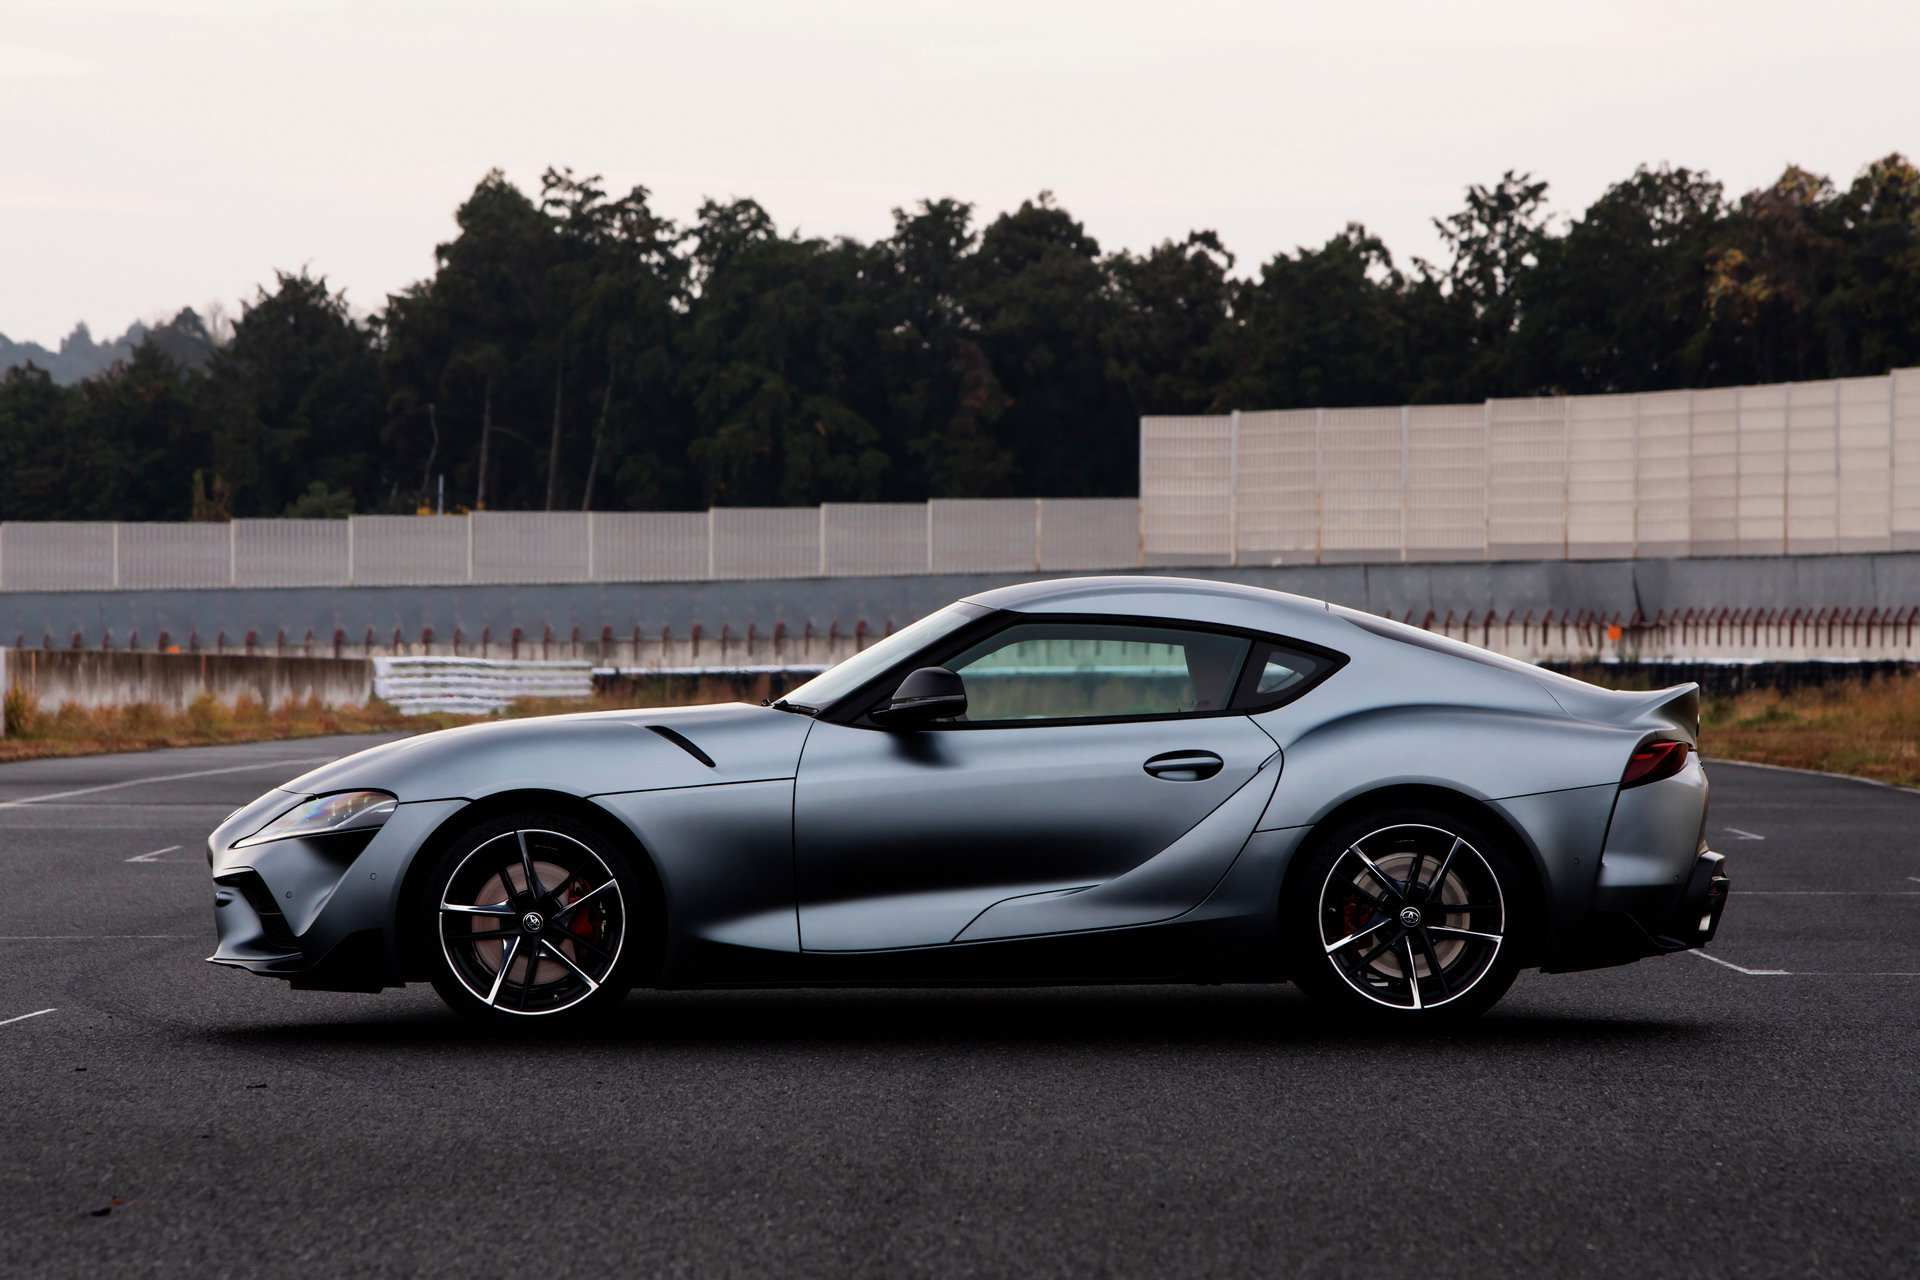 34 Great Toyota Gr Supra 2020 Style for Toyota Gr Supra 2020